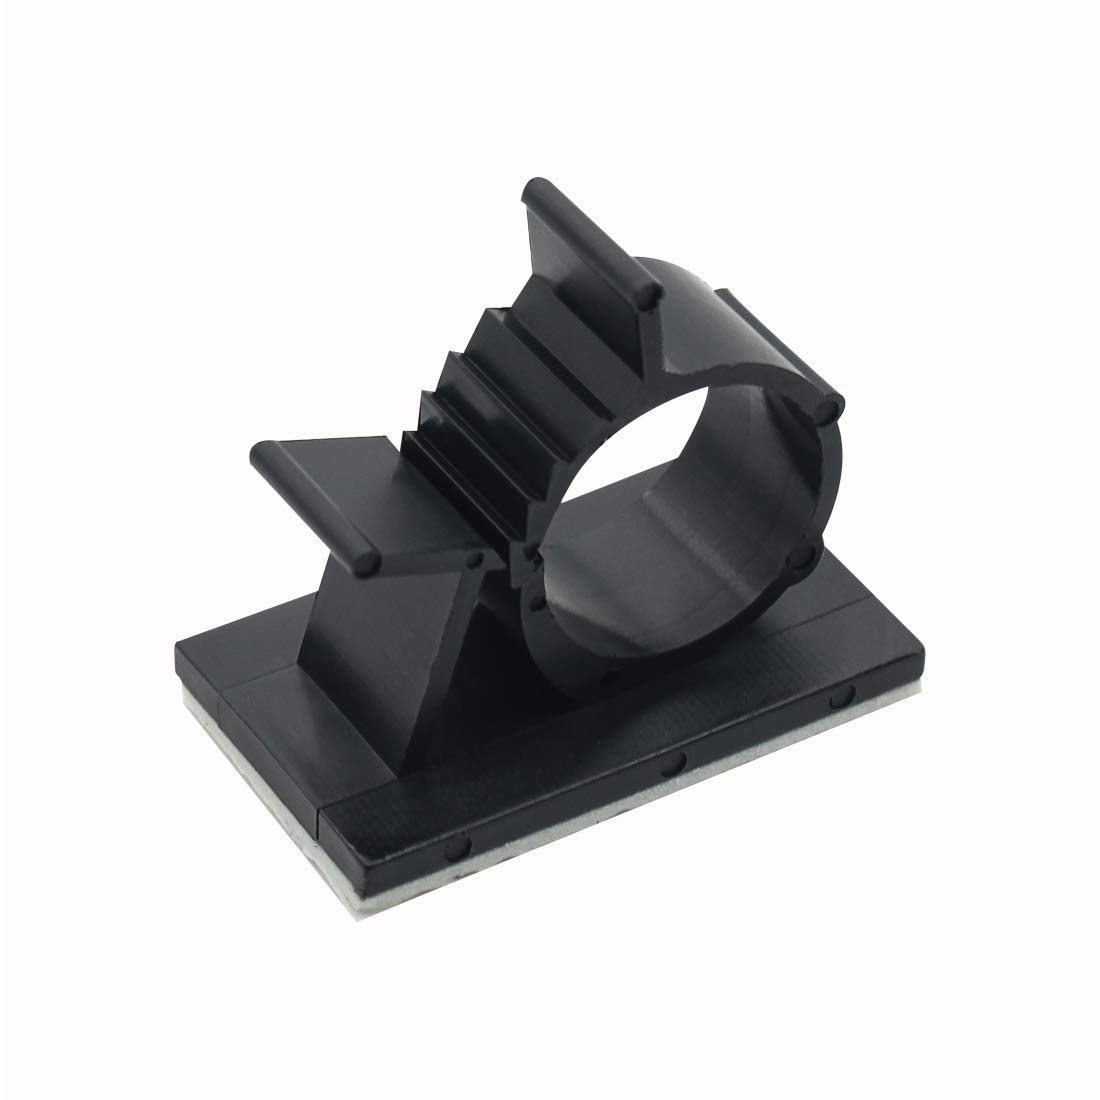 25 Pack Black Adjustable Cable Clips Self-Adhesive Wire Holder Cable Organizer Adhesive Wire Clamps